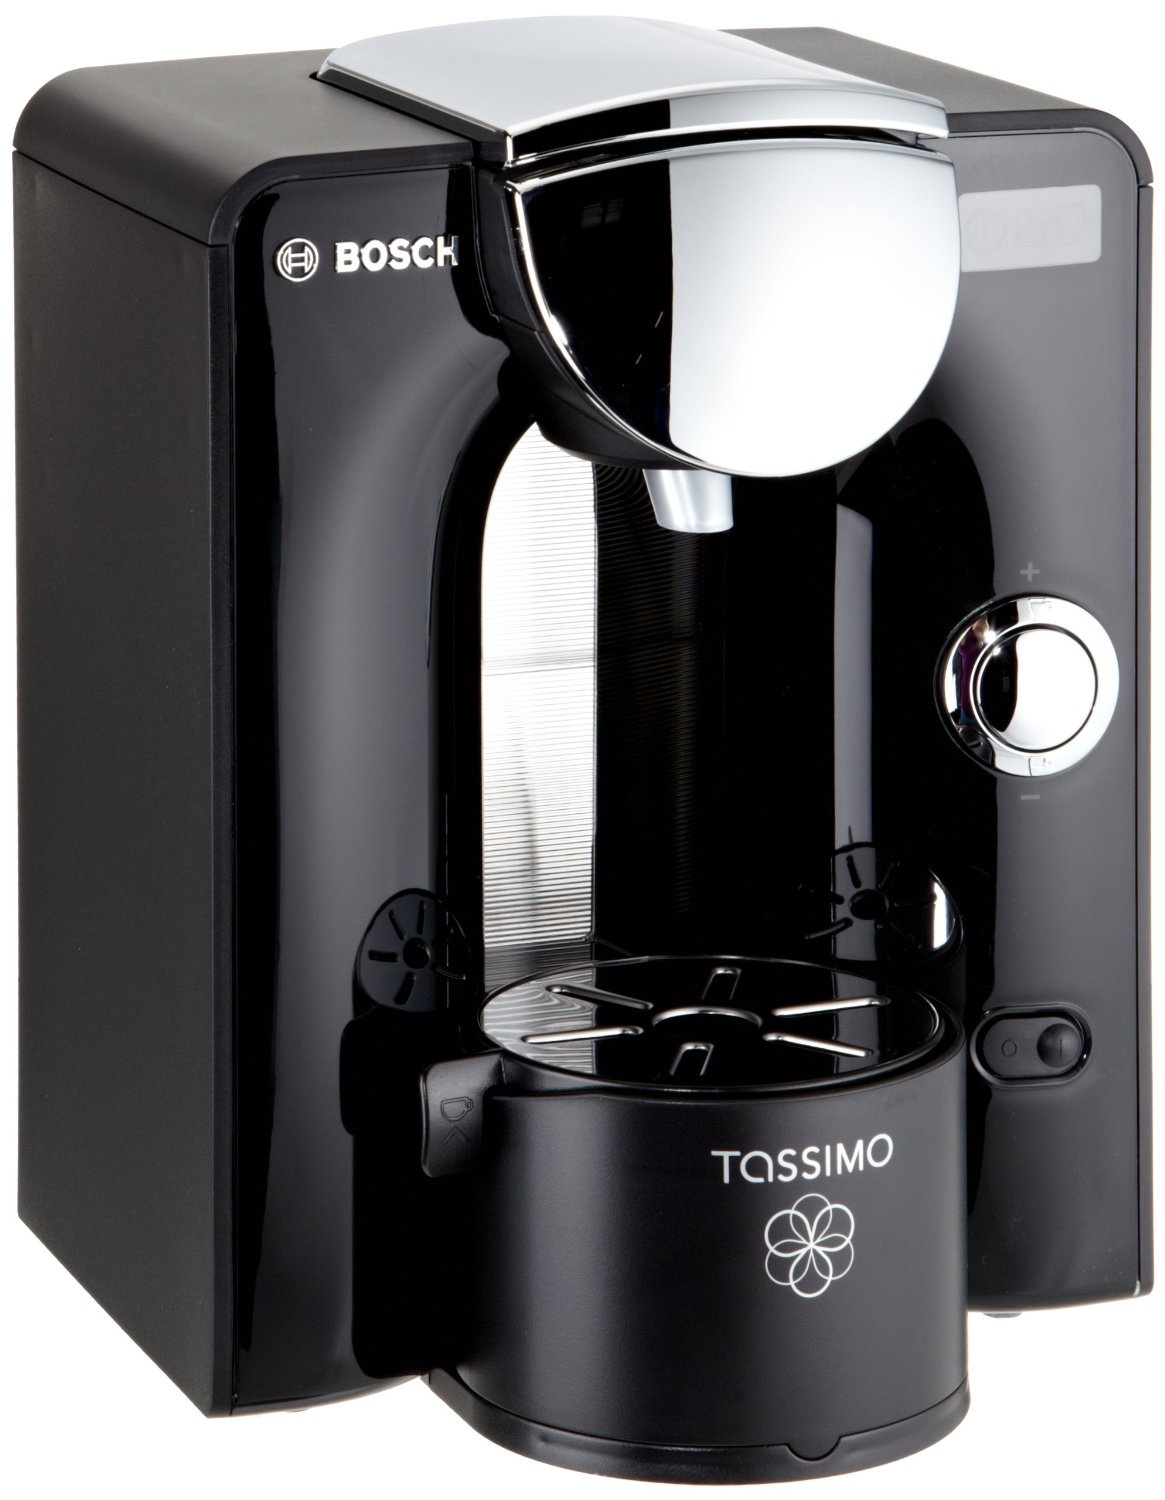 acheter cafetiere tassimo bosch. Black Bedroom Furniture Sets. Home Design Ideas